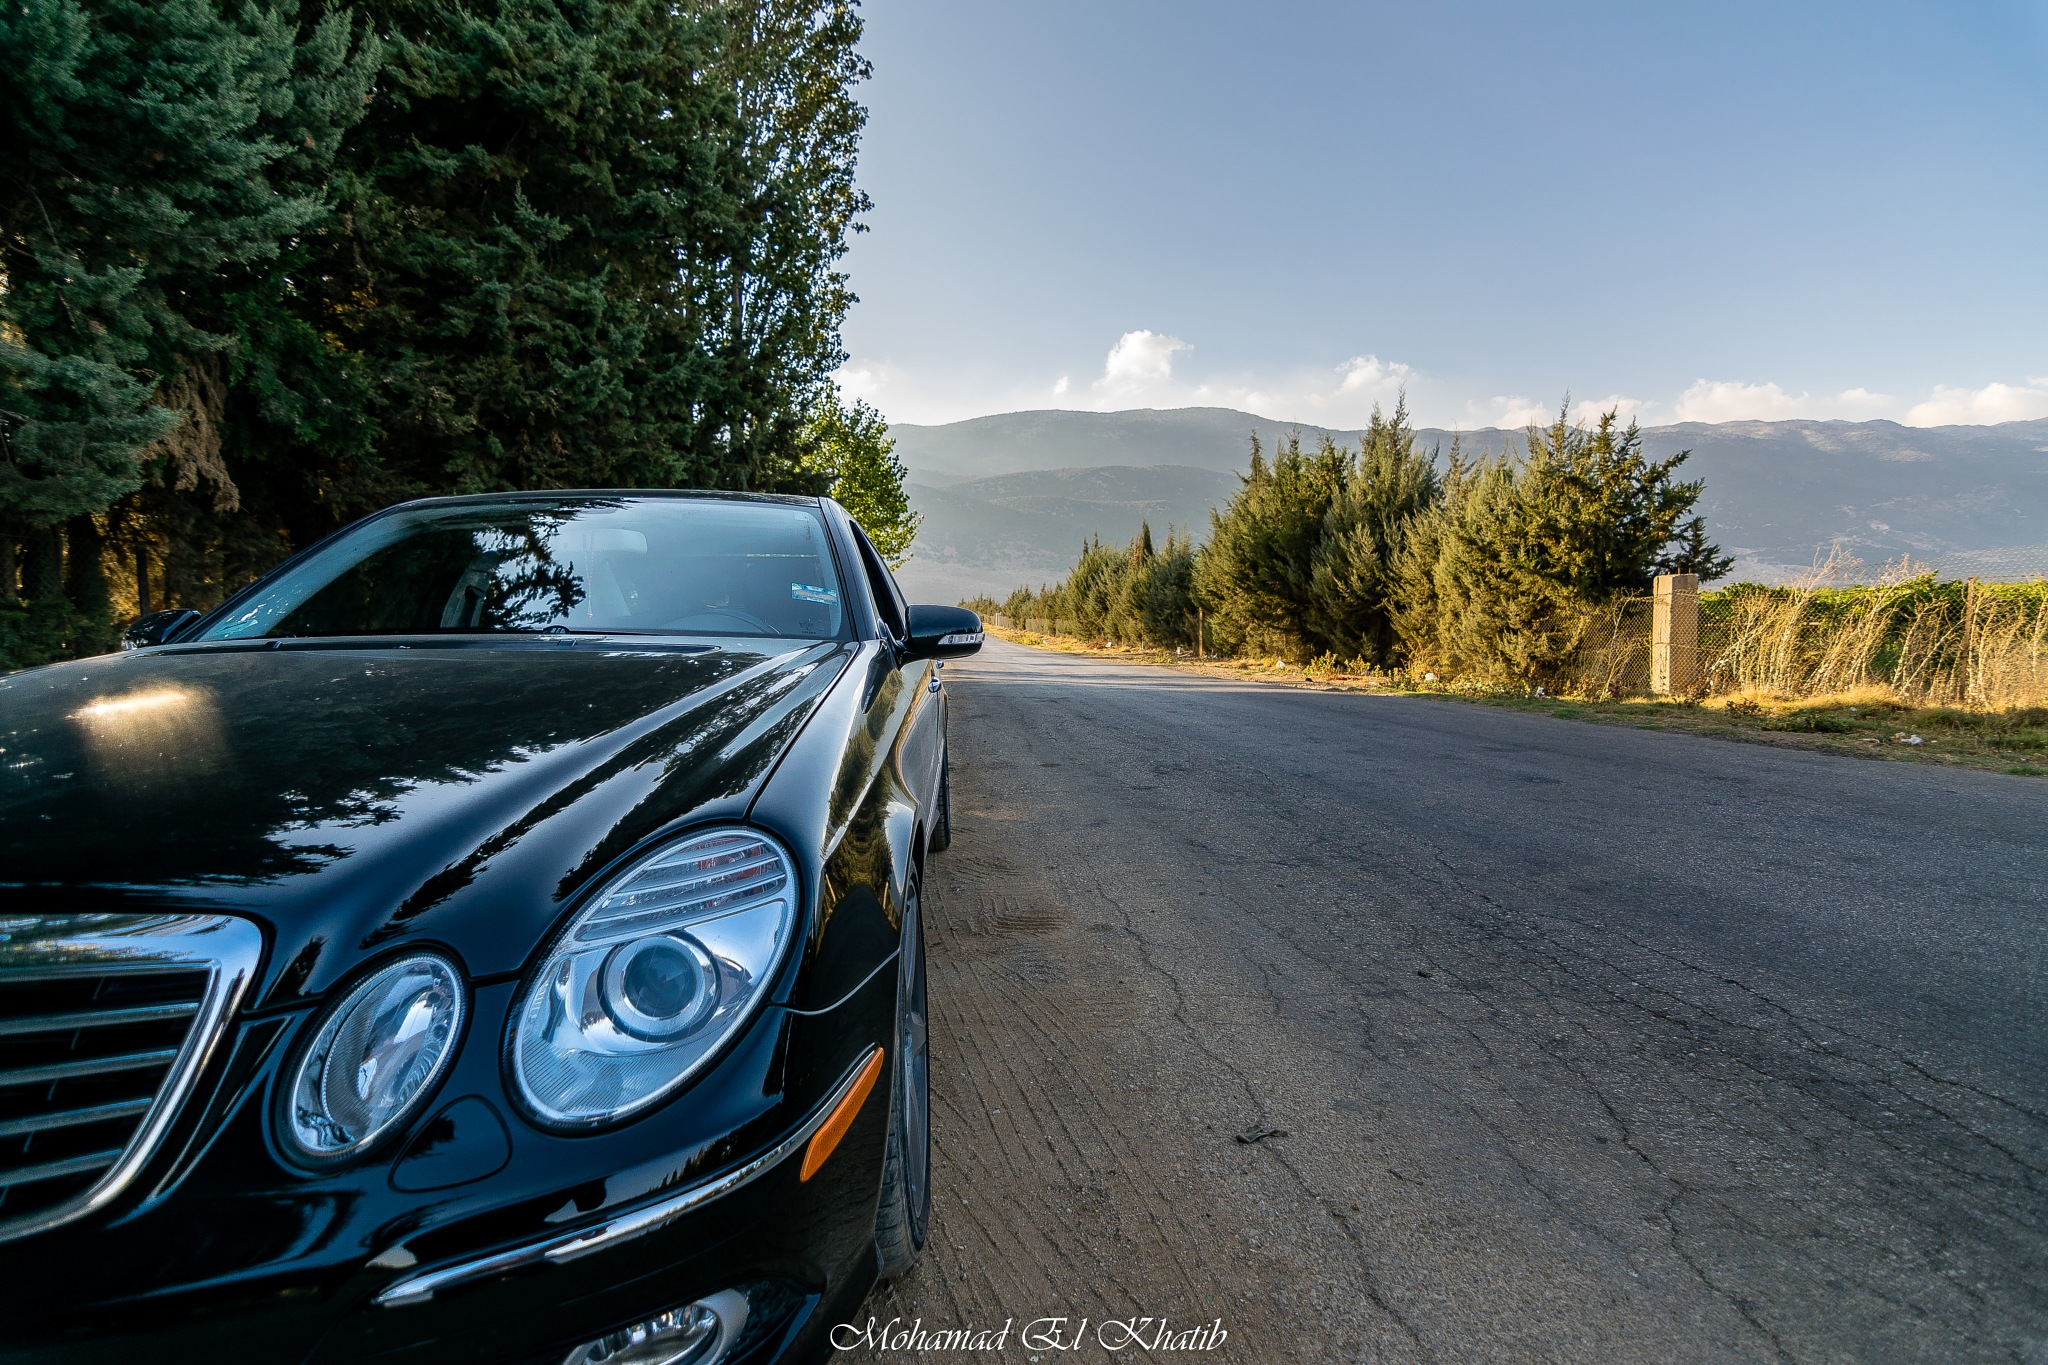 When you love your car. by Mohamad El Khatib